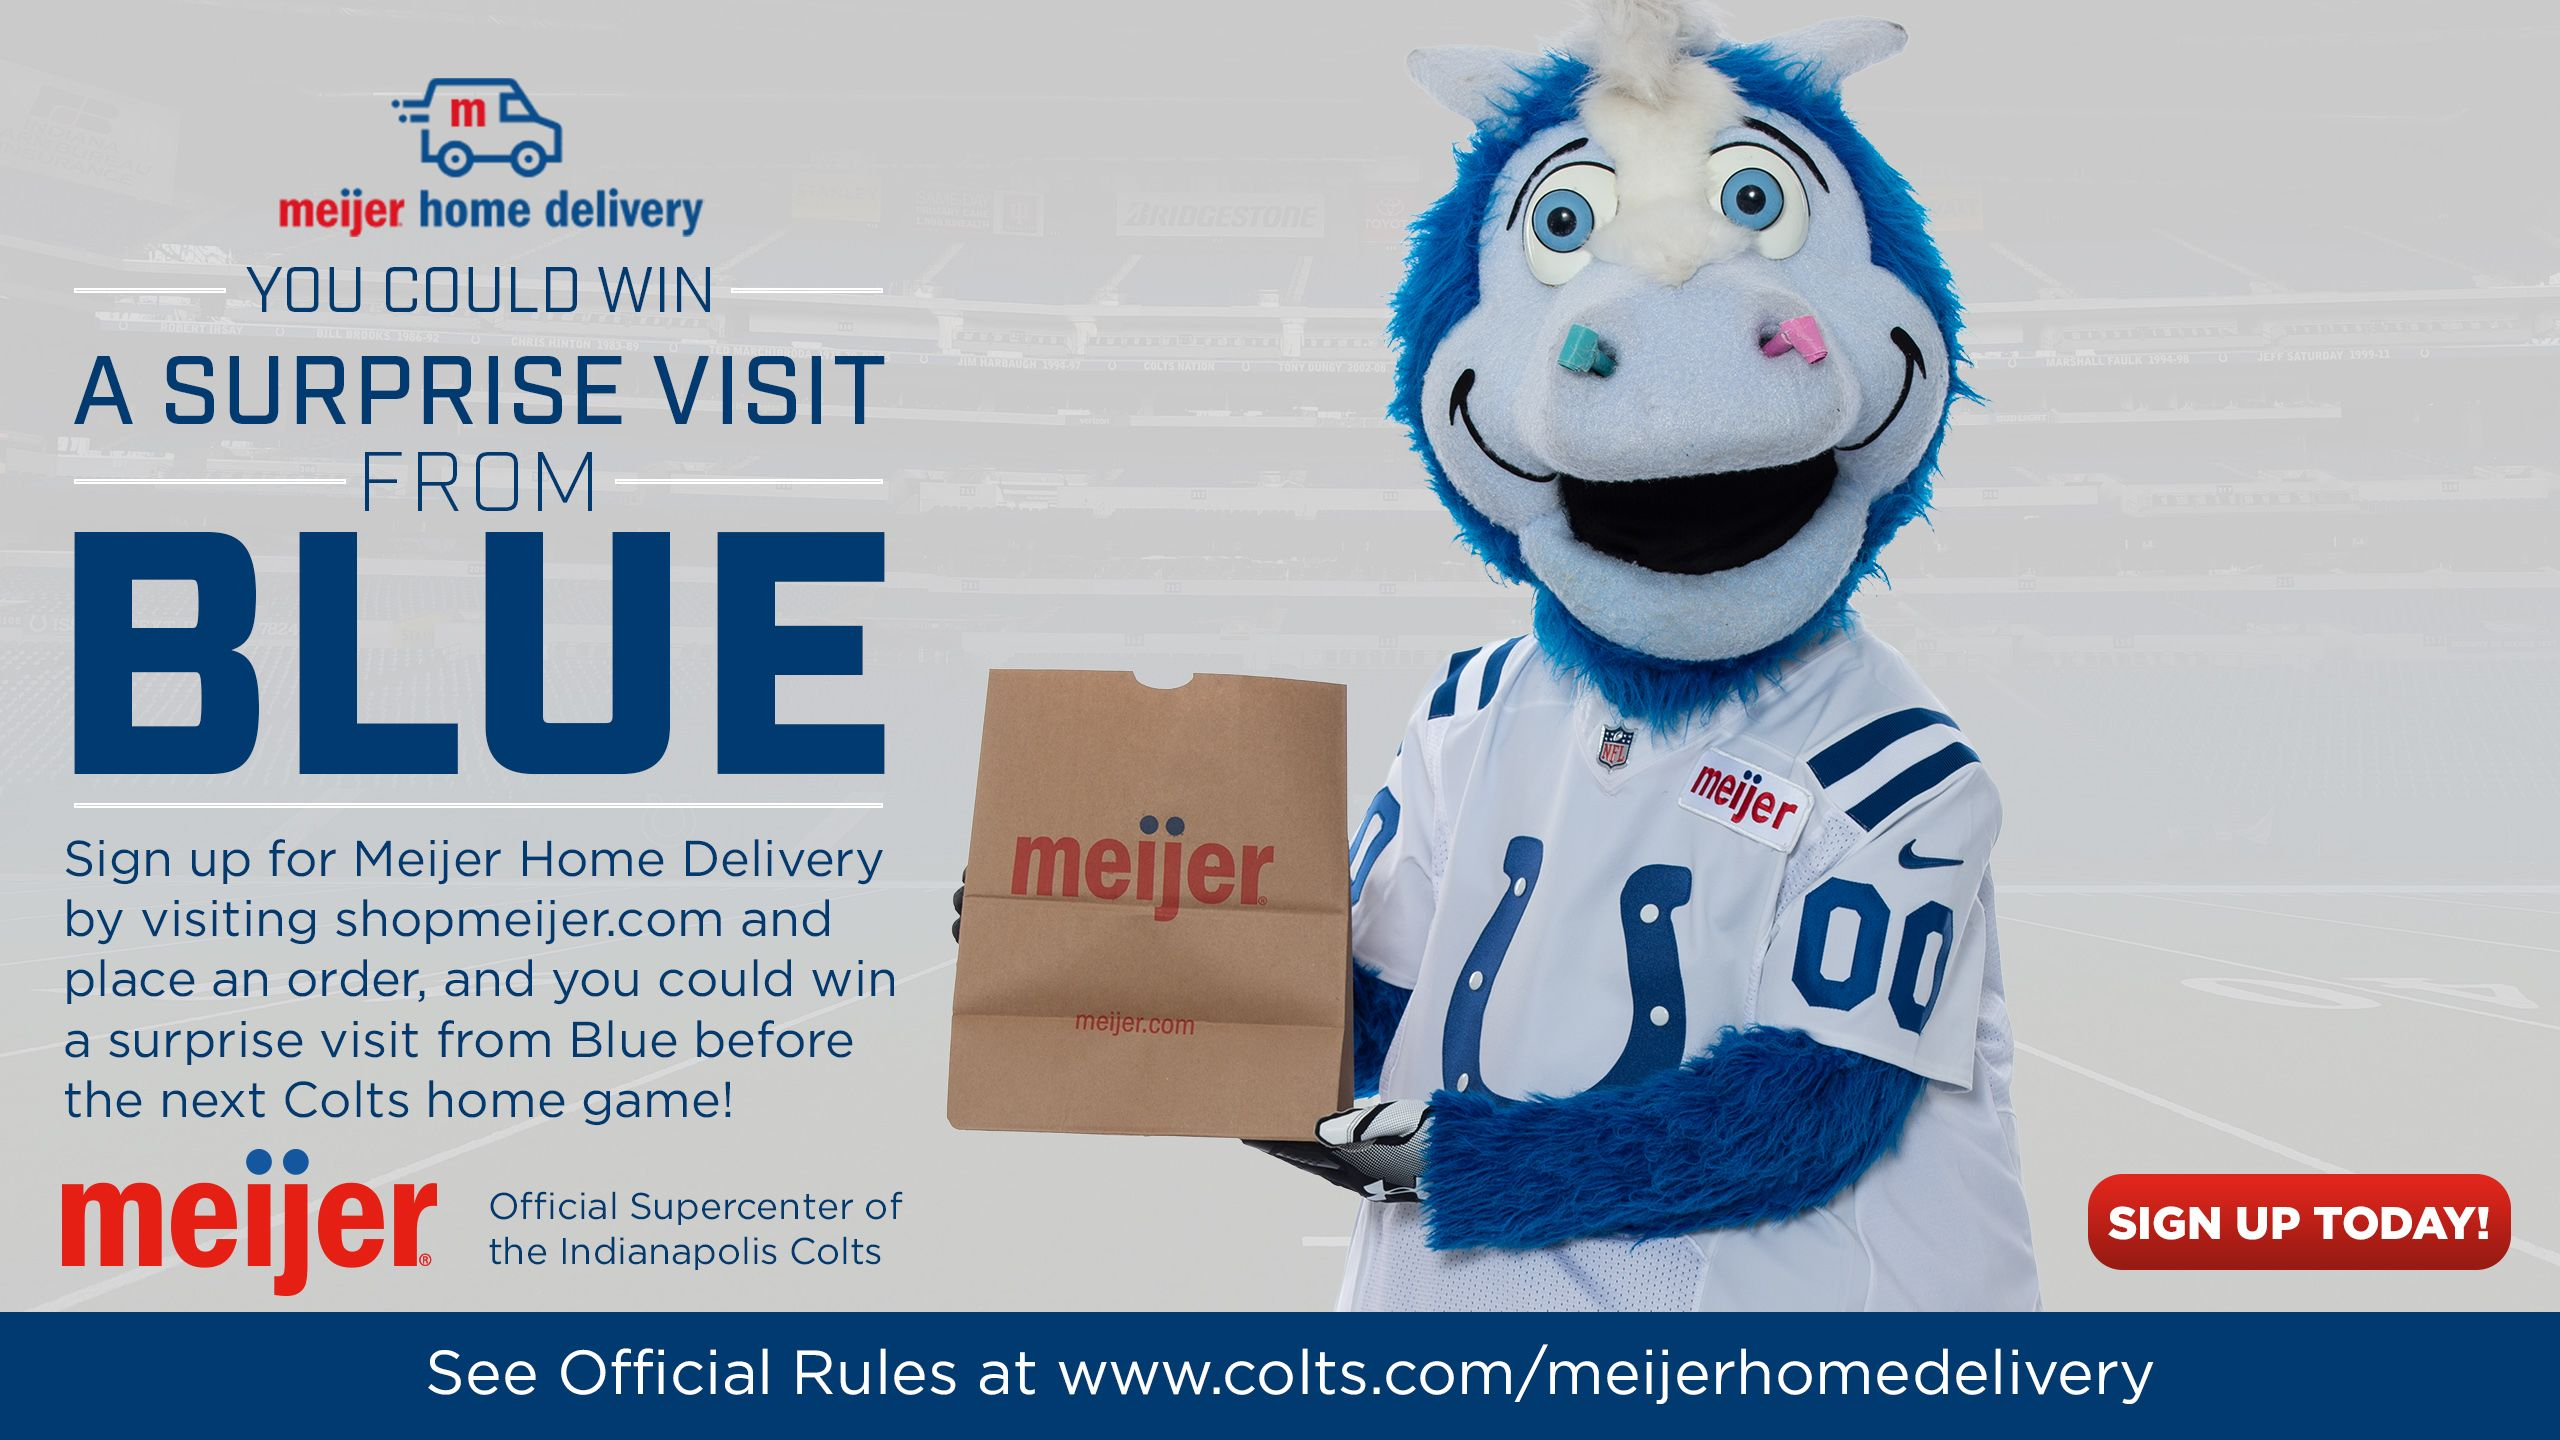 Blue Meijer Home Delivery_2560x1440 (1) (1)